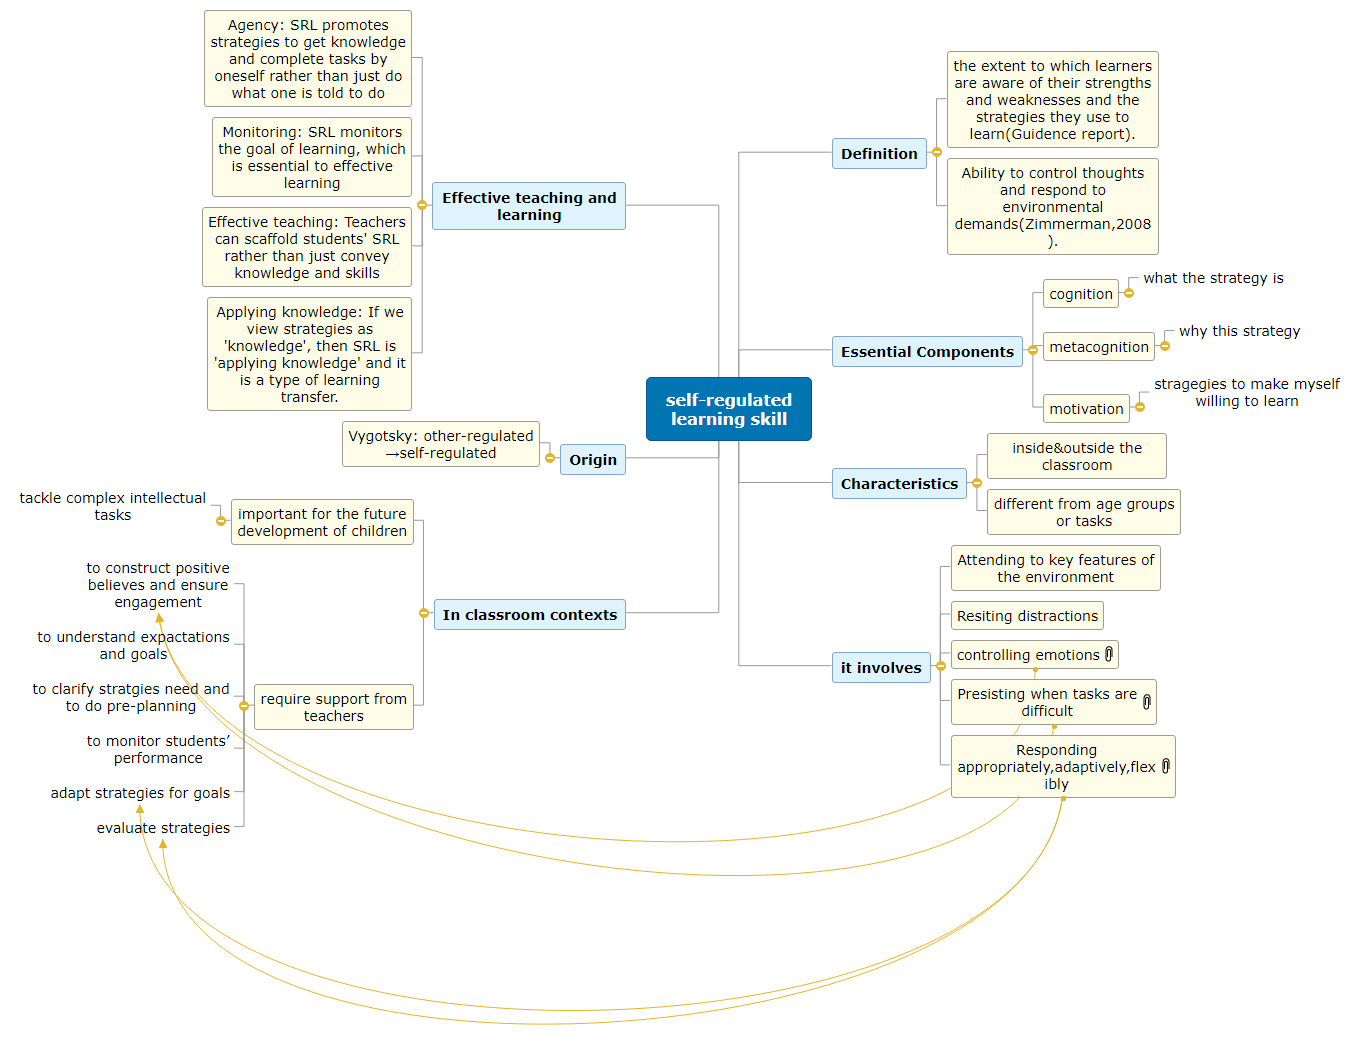 self-regulated learning By group A4 Mind Map